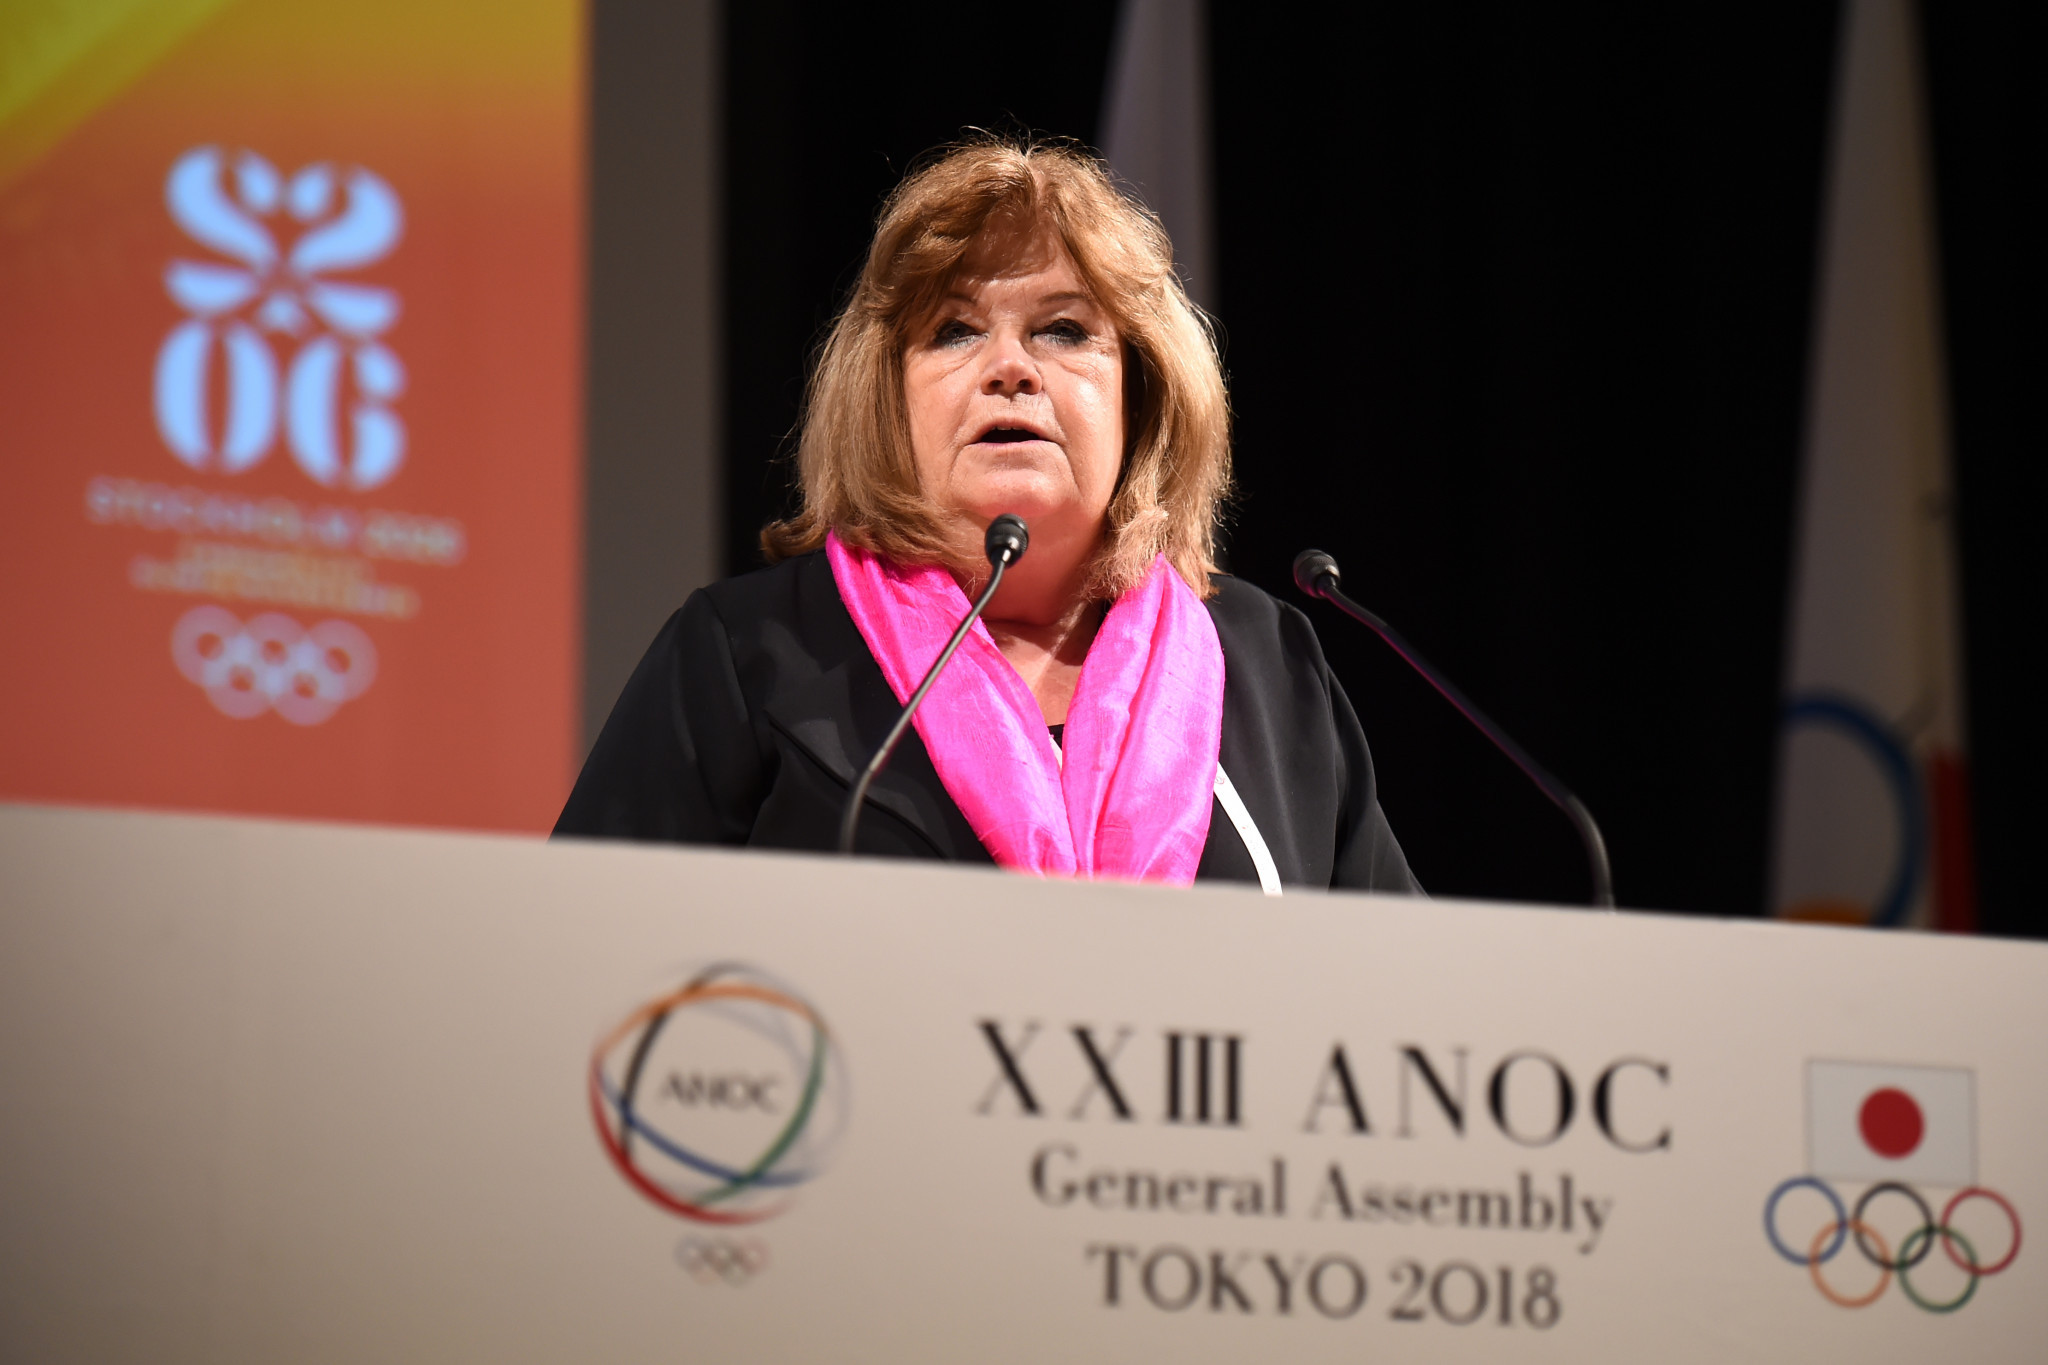 Gunilla Lindberg asserted that Stockholm 2026 was the partner the IOC needed right now ©Getty Images